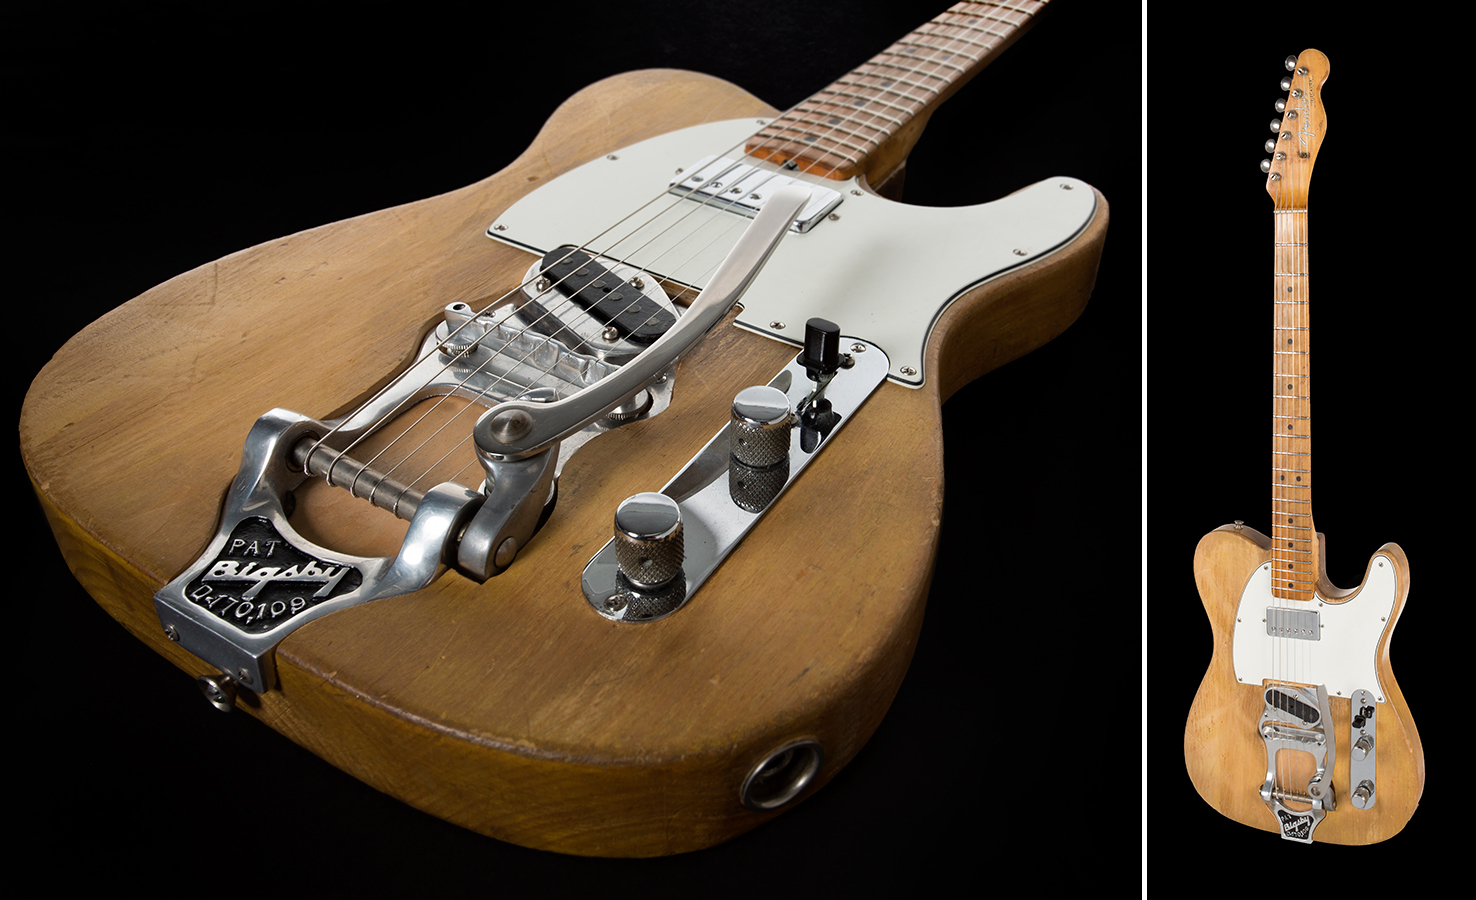 Bob Dylan's 'Going Electric' Guitar Headed to Auction